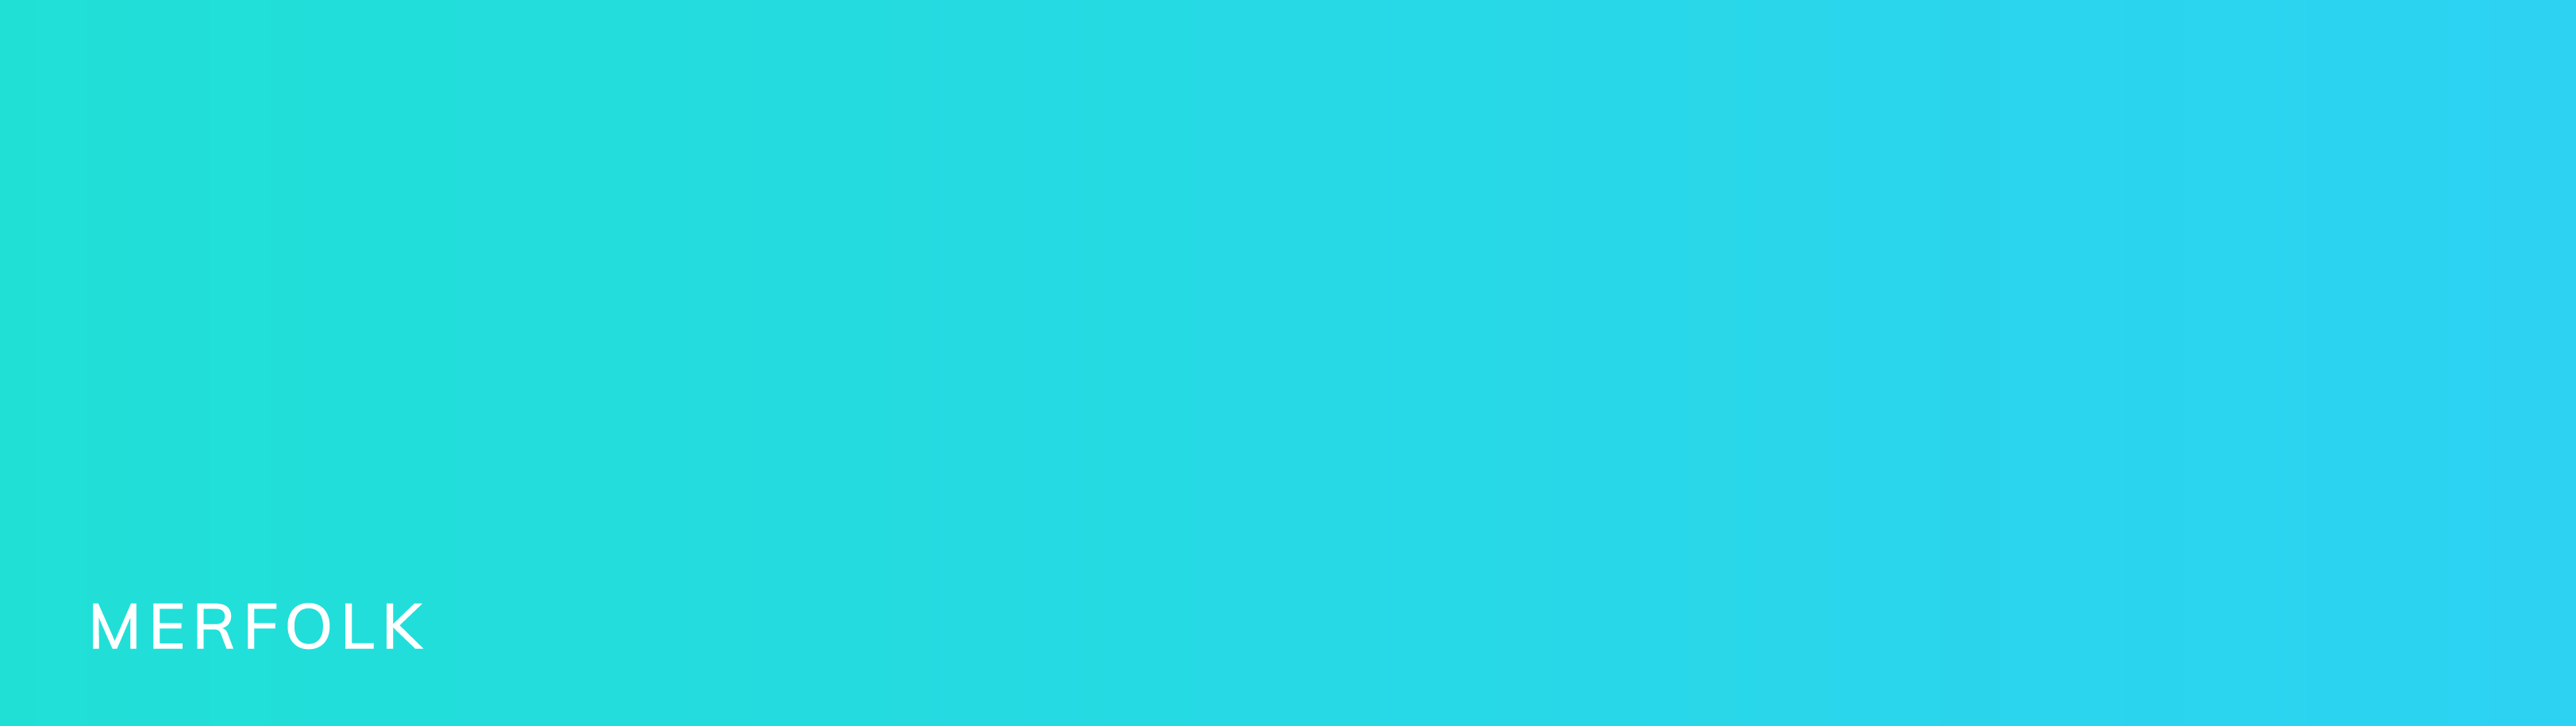 This is another subtle brand color gradient called Merfolk. It shiftf from a vibrant light turquoise to a cooler light blue.